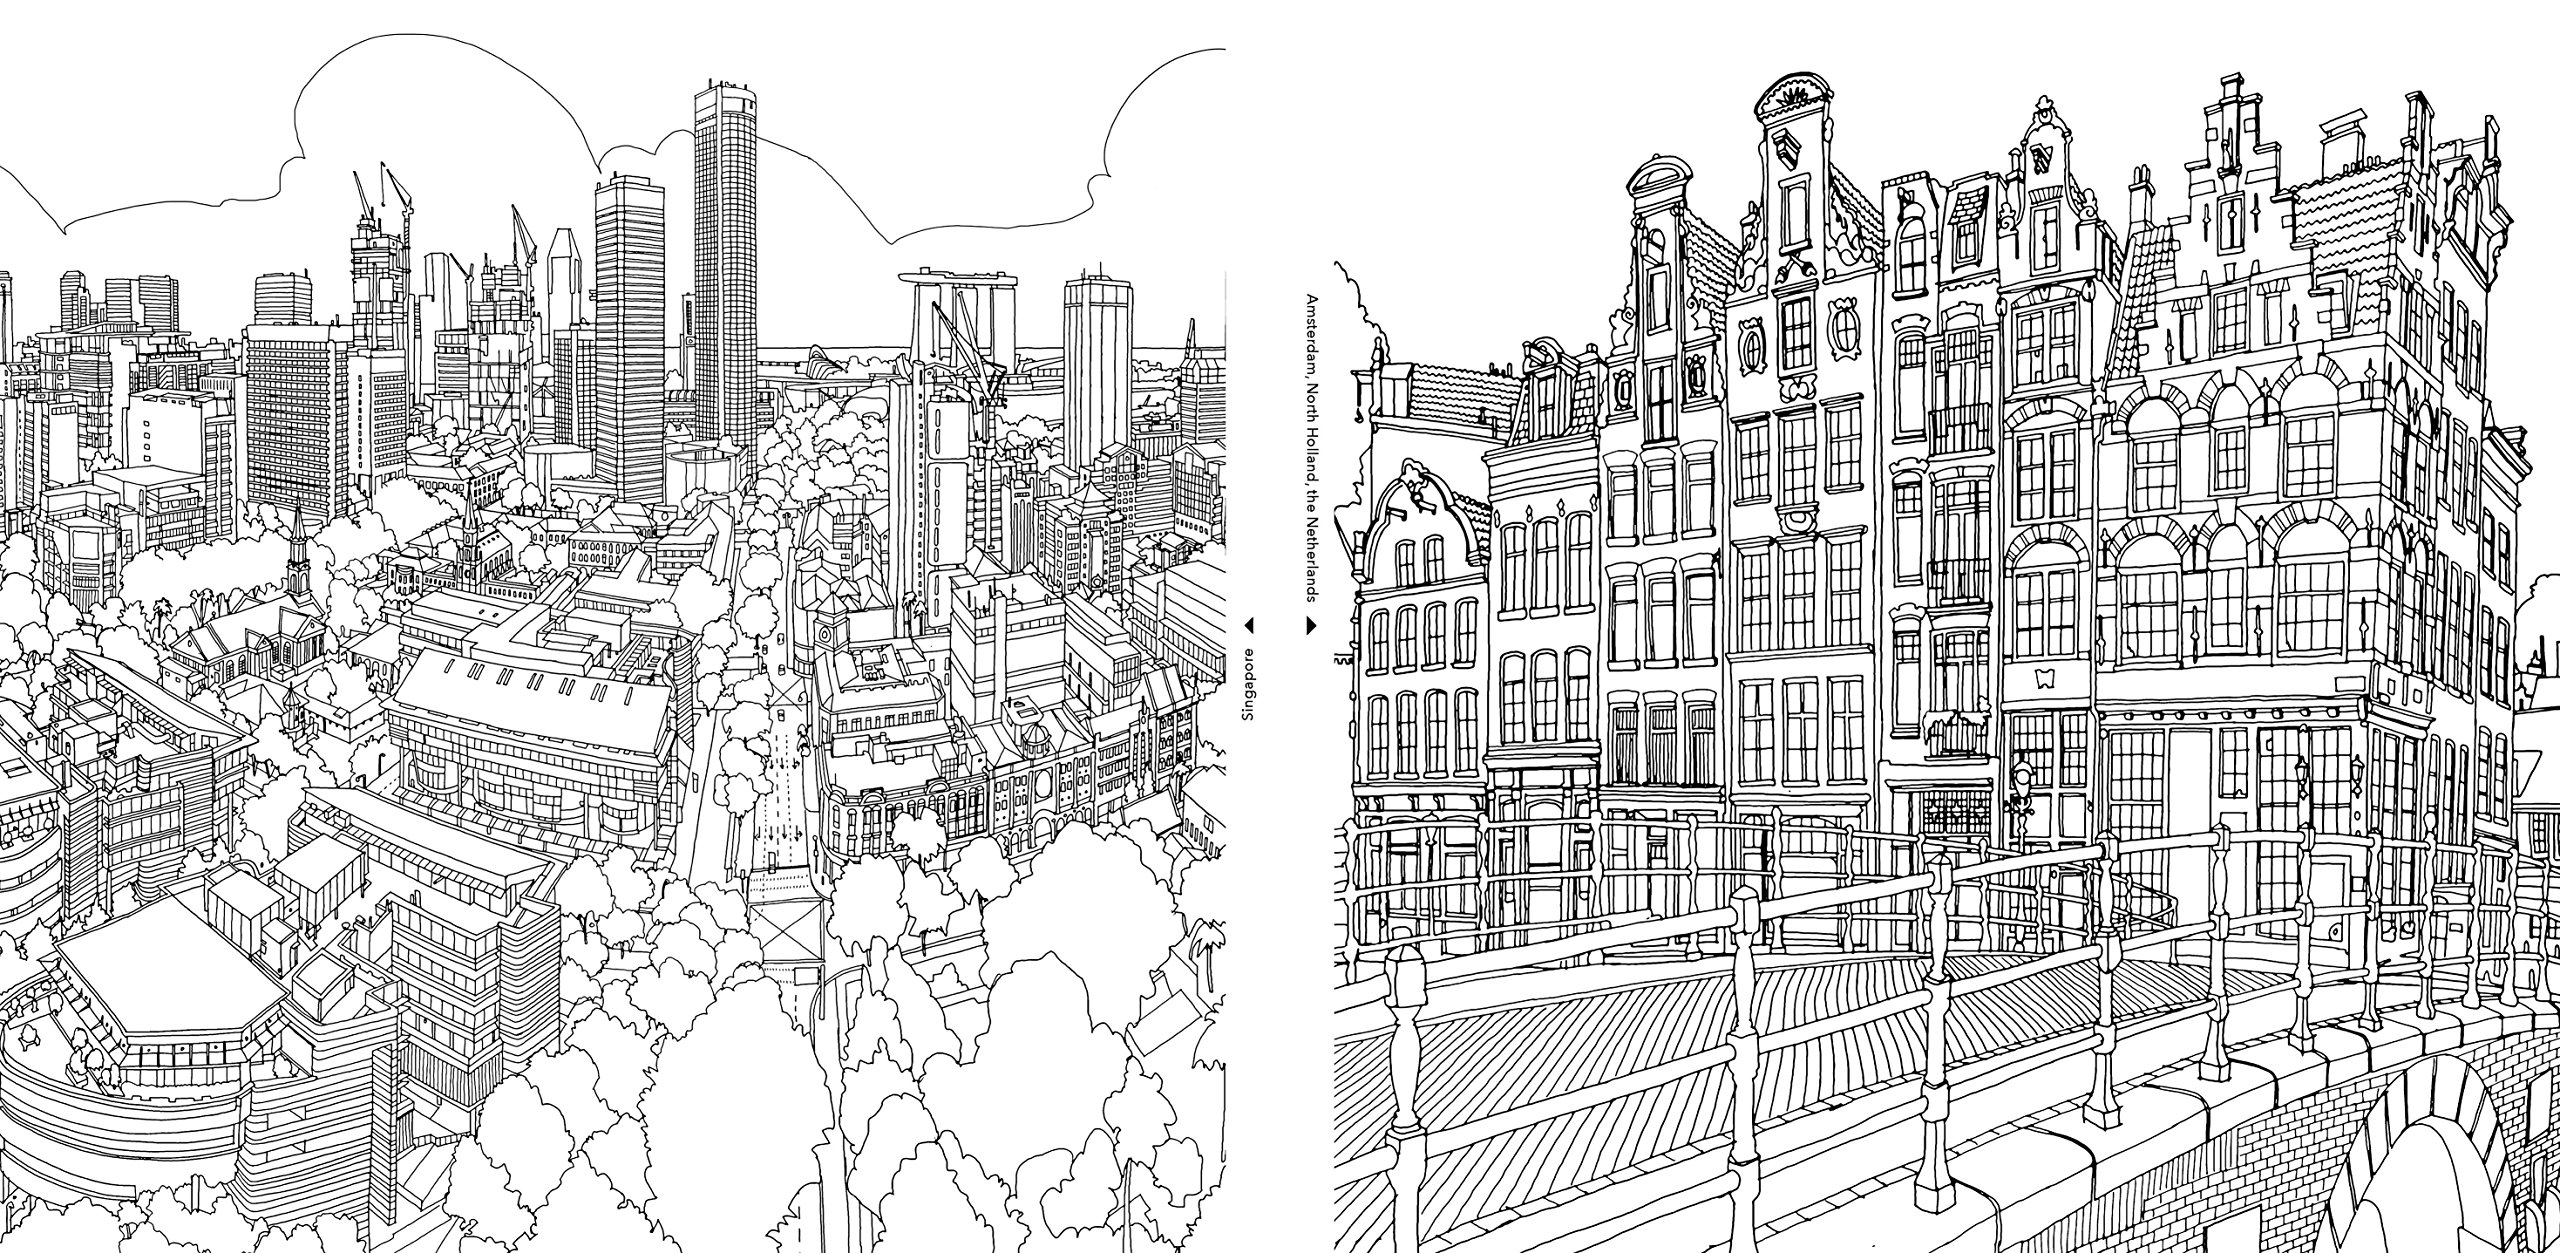 an extremely detailed coloring book for architecture lovers - Cool Coloring Books For Adults